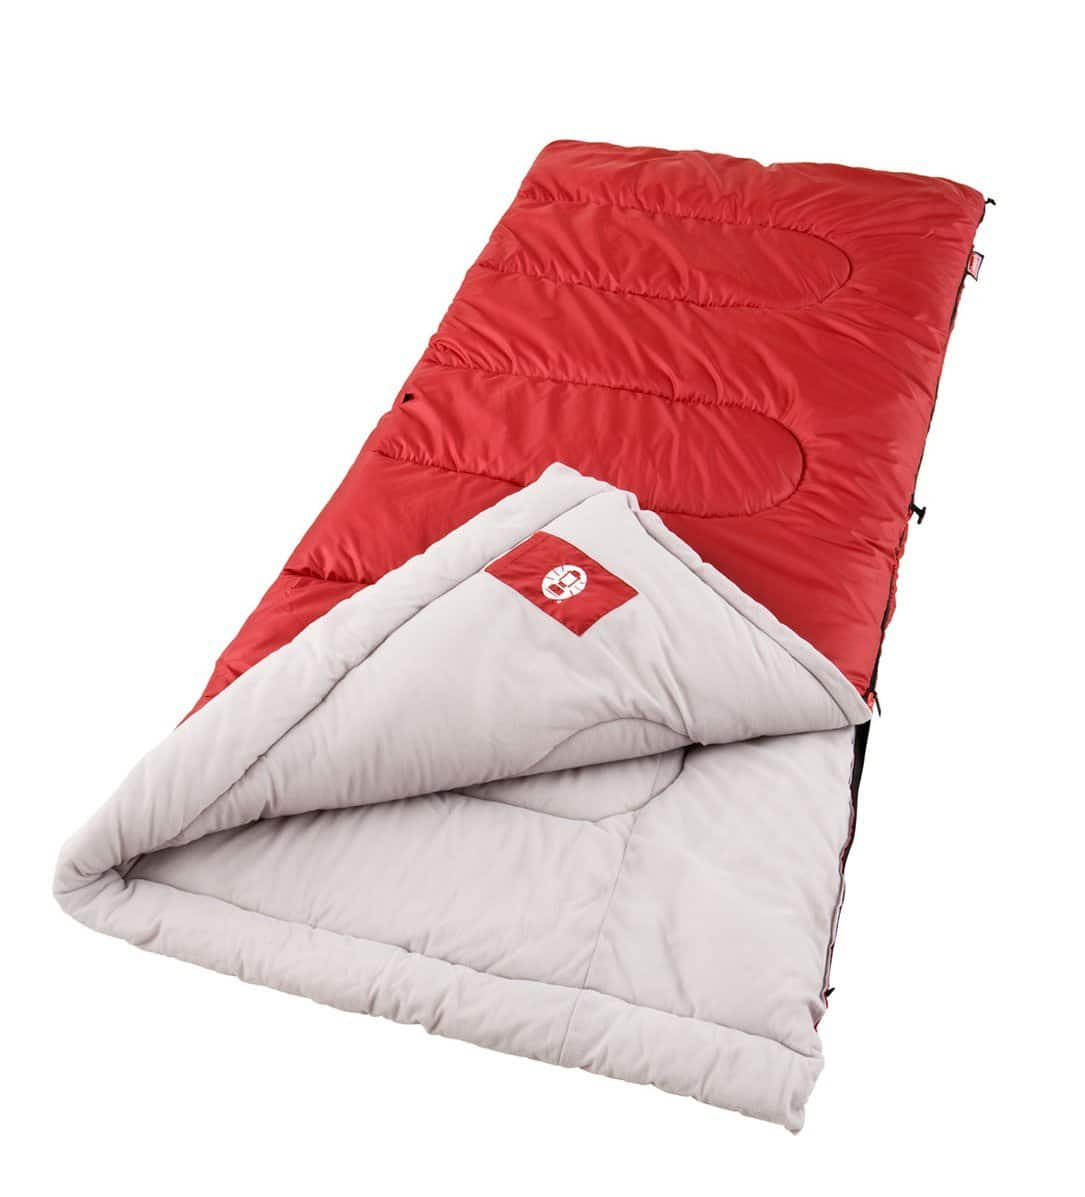 Coleman Palmetto Cool Weather Sleeping Bag $18.75, Coleman Green Valley 30 Degree Sleeping Bag $25, Coleman 8-Person Red Canyon Tent $94